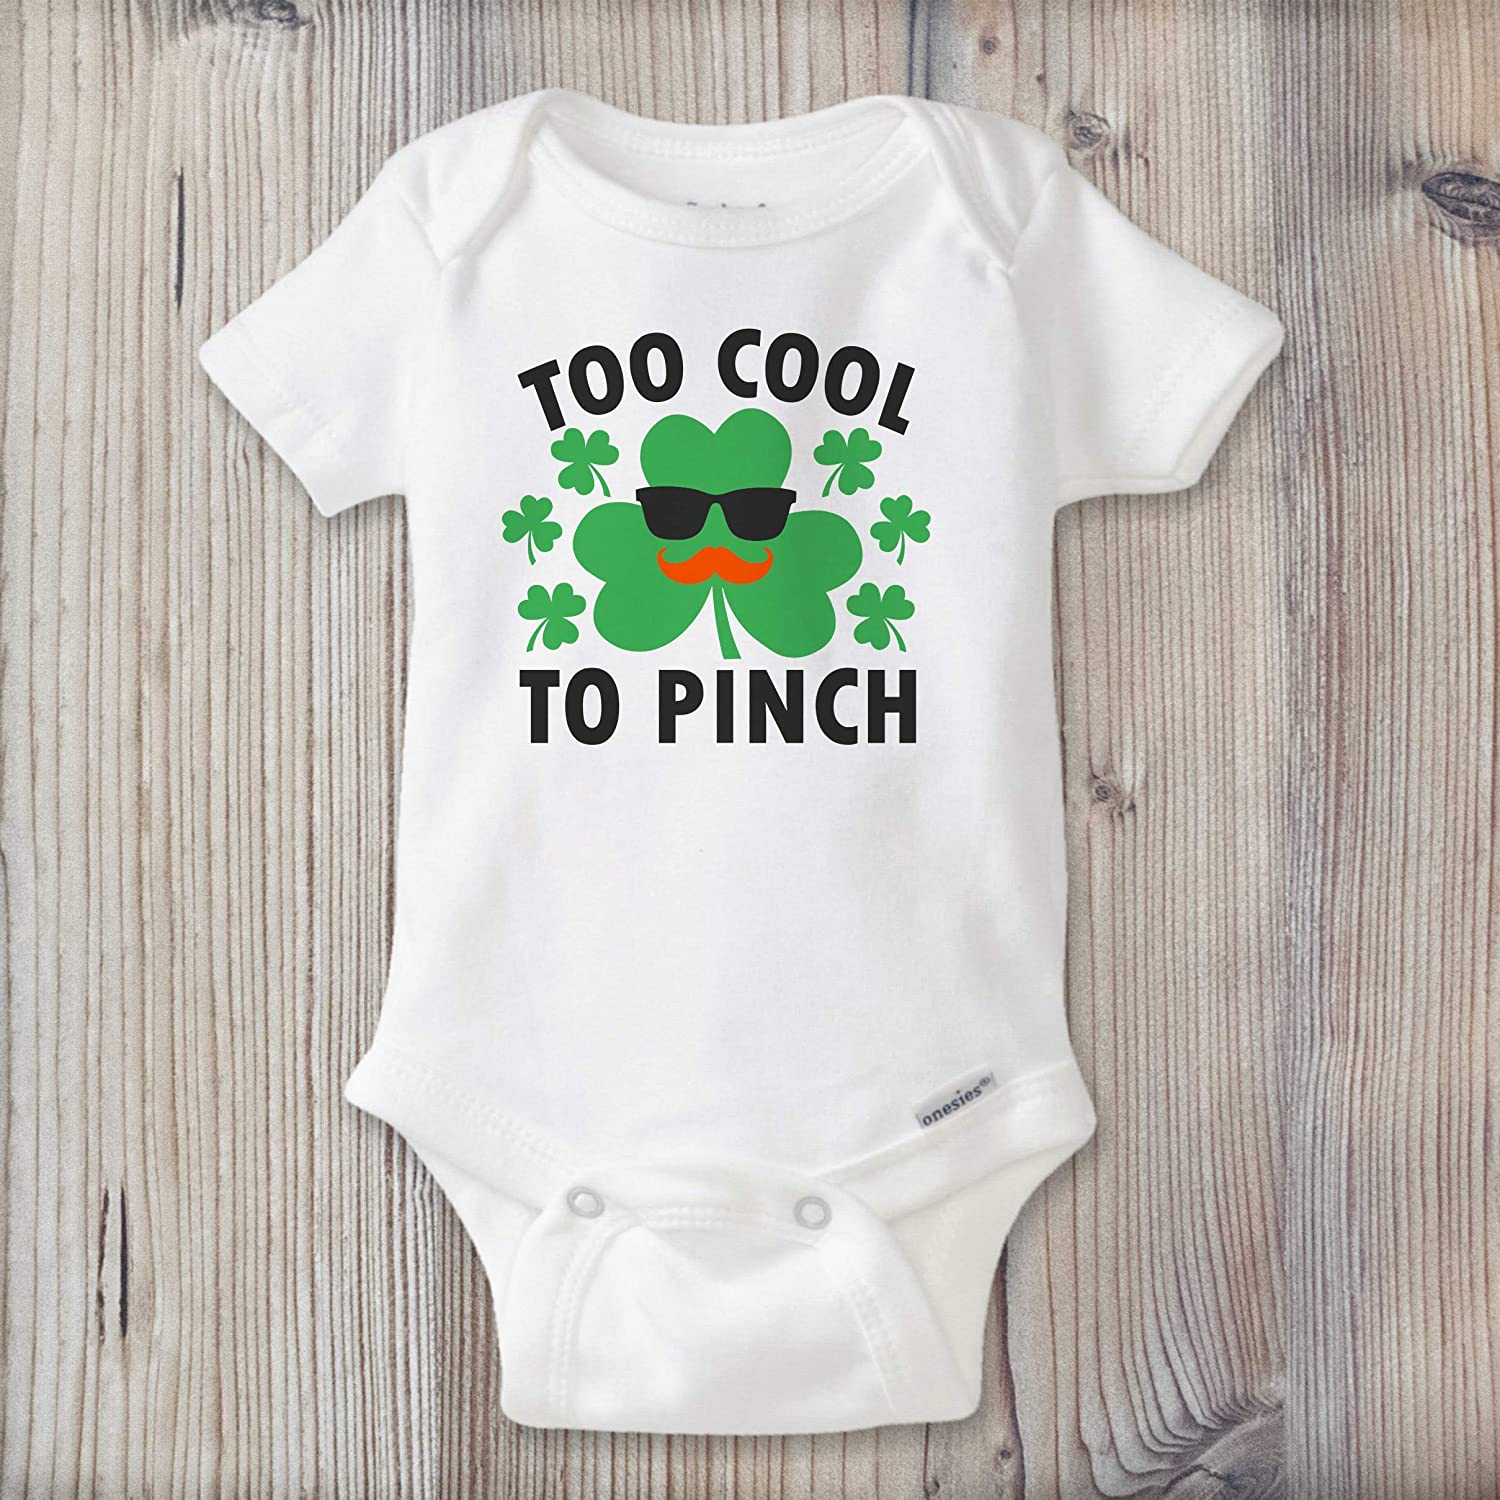 701fbddc6 Amazon.com: St. Patricks Baby Onesie® or Toddler T-Shirt | Irish Baby  Bodysuit | Unisex Baby Clothes | St. Patty's Day Outfit | Too Cool To  Pinch: Handmade